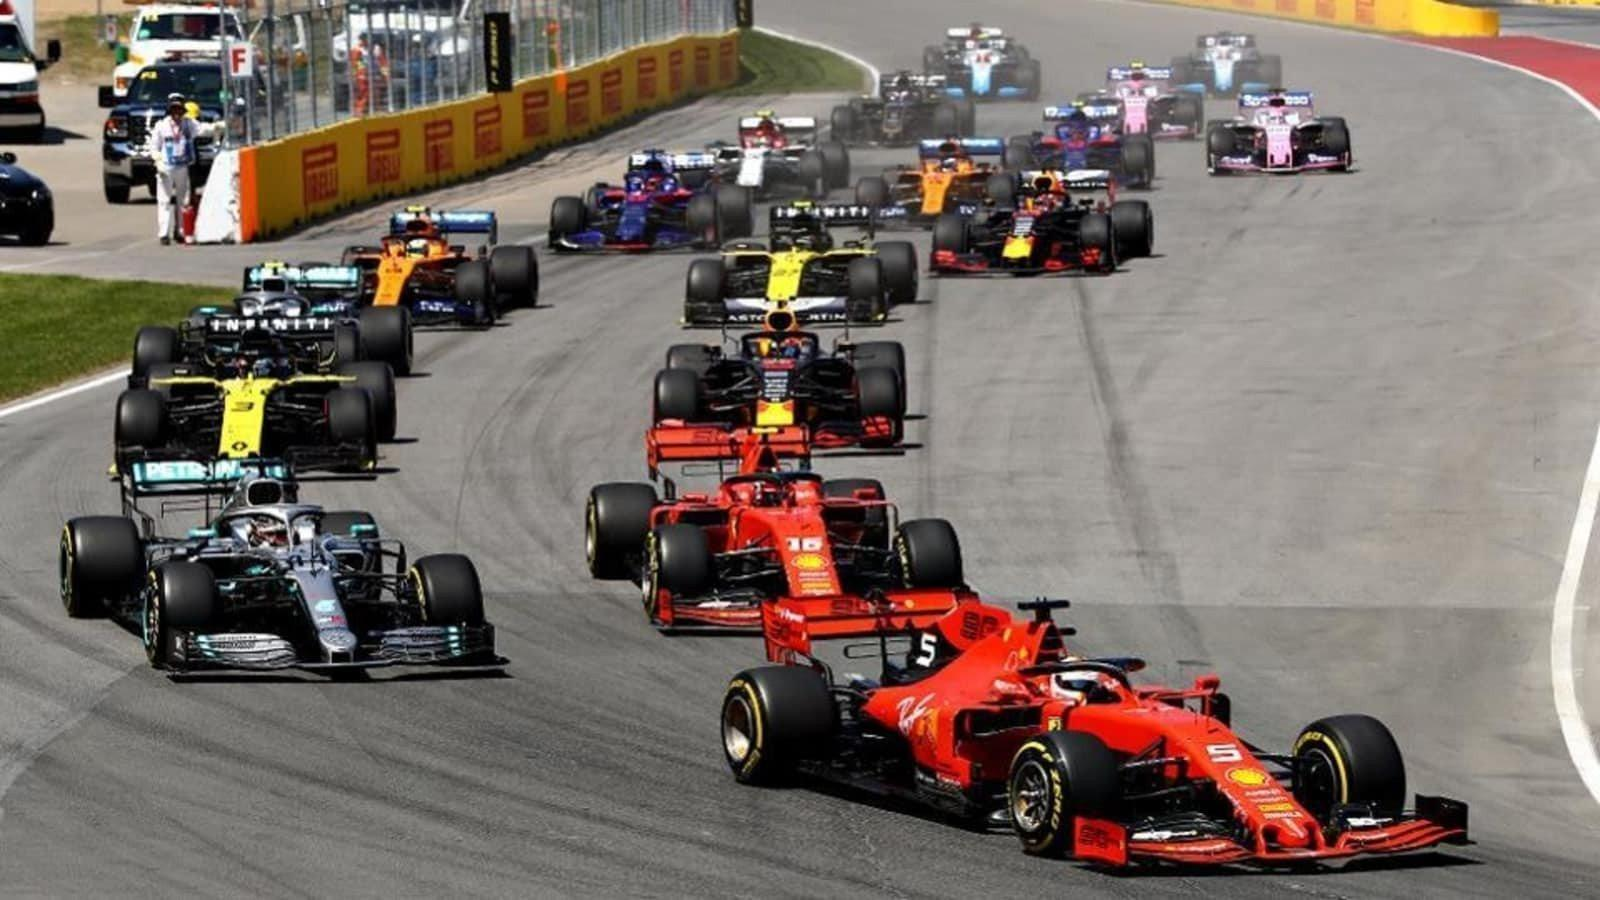 Qatar expecting full house for debut F1 grand prix